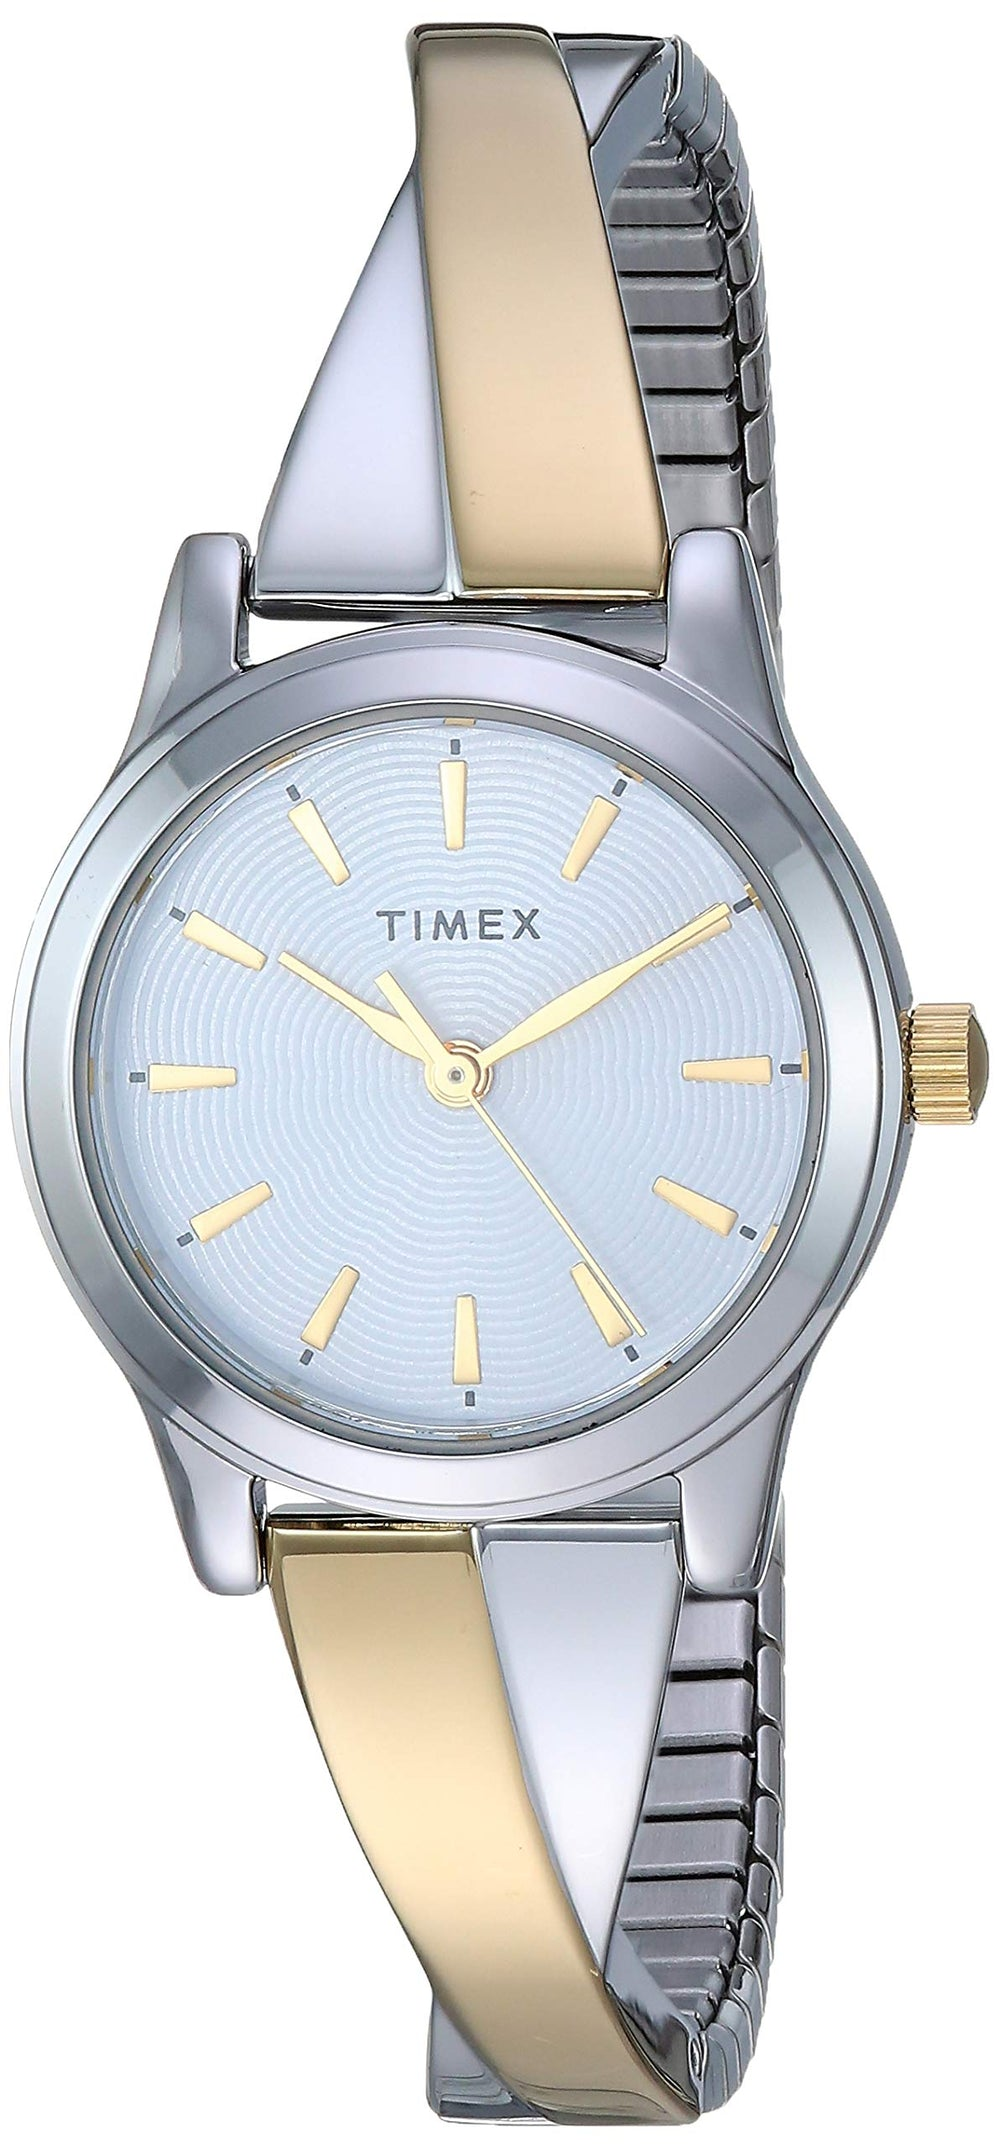 Timex Women Stretch Bangle Watch - Shade & watches